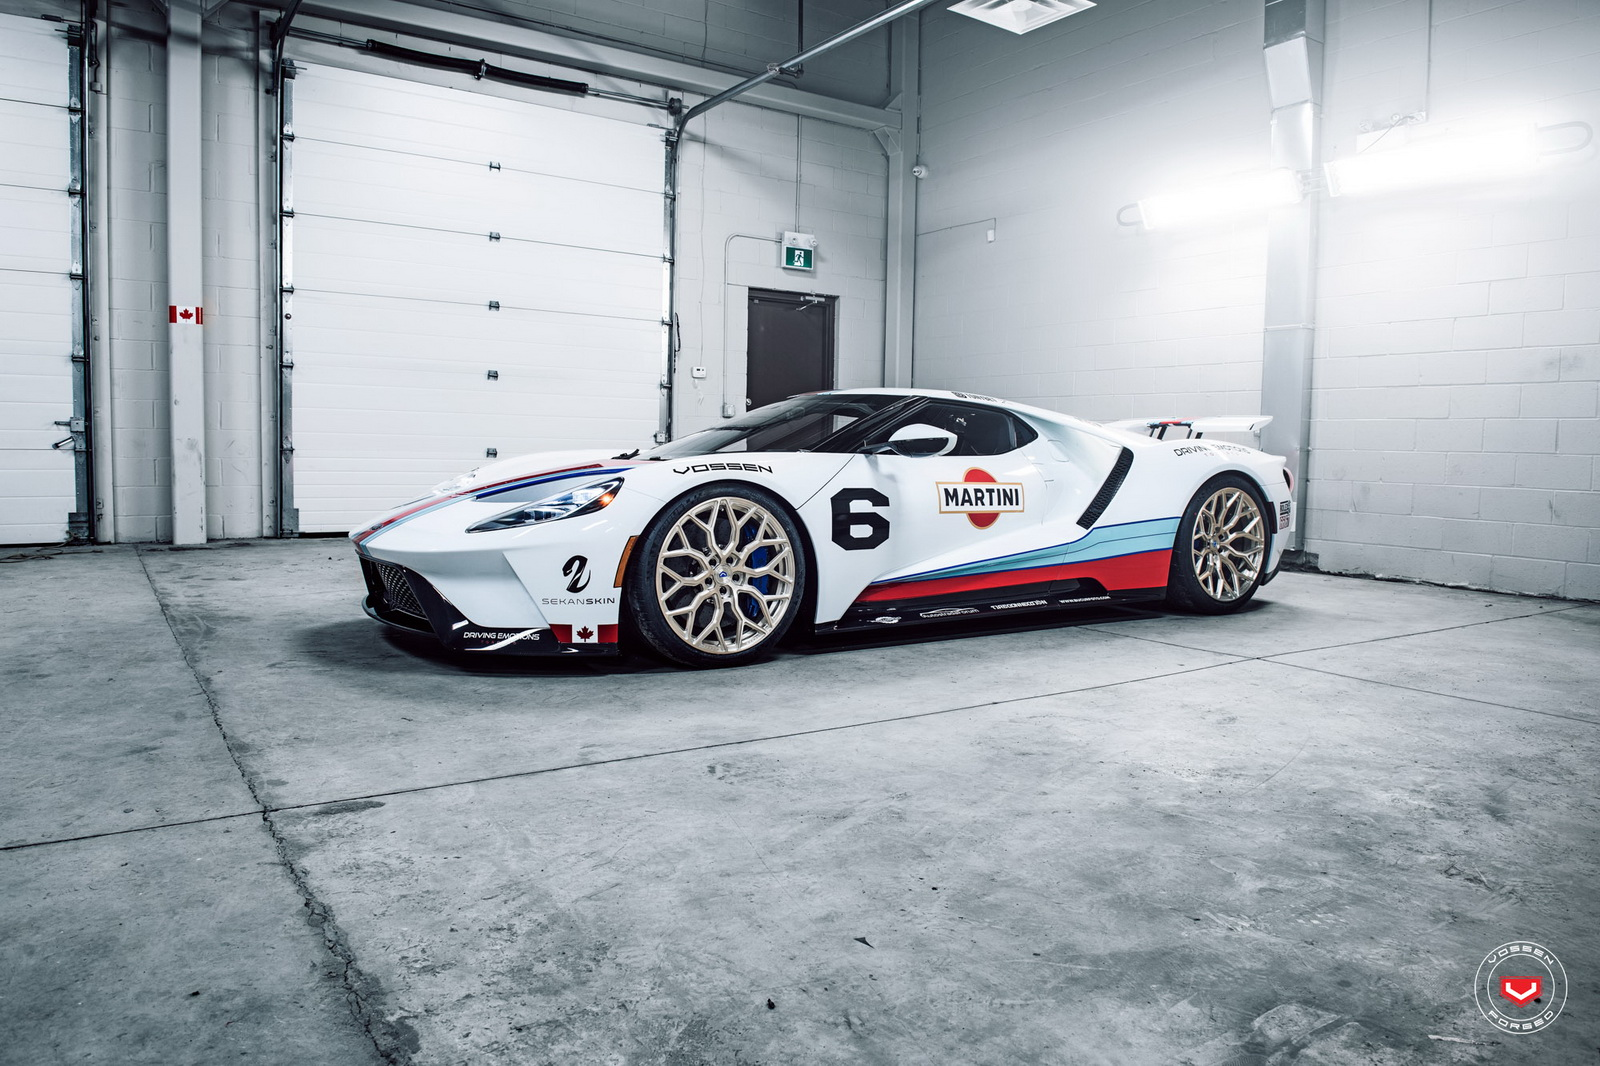 ford-gt-martini-livery-vossen-wheels-13